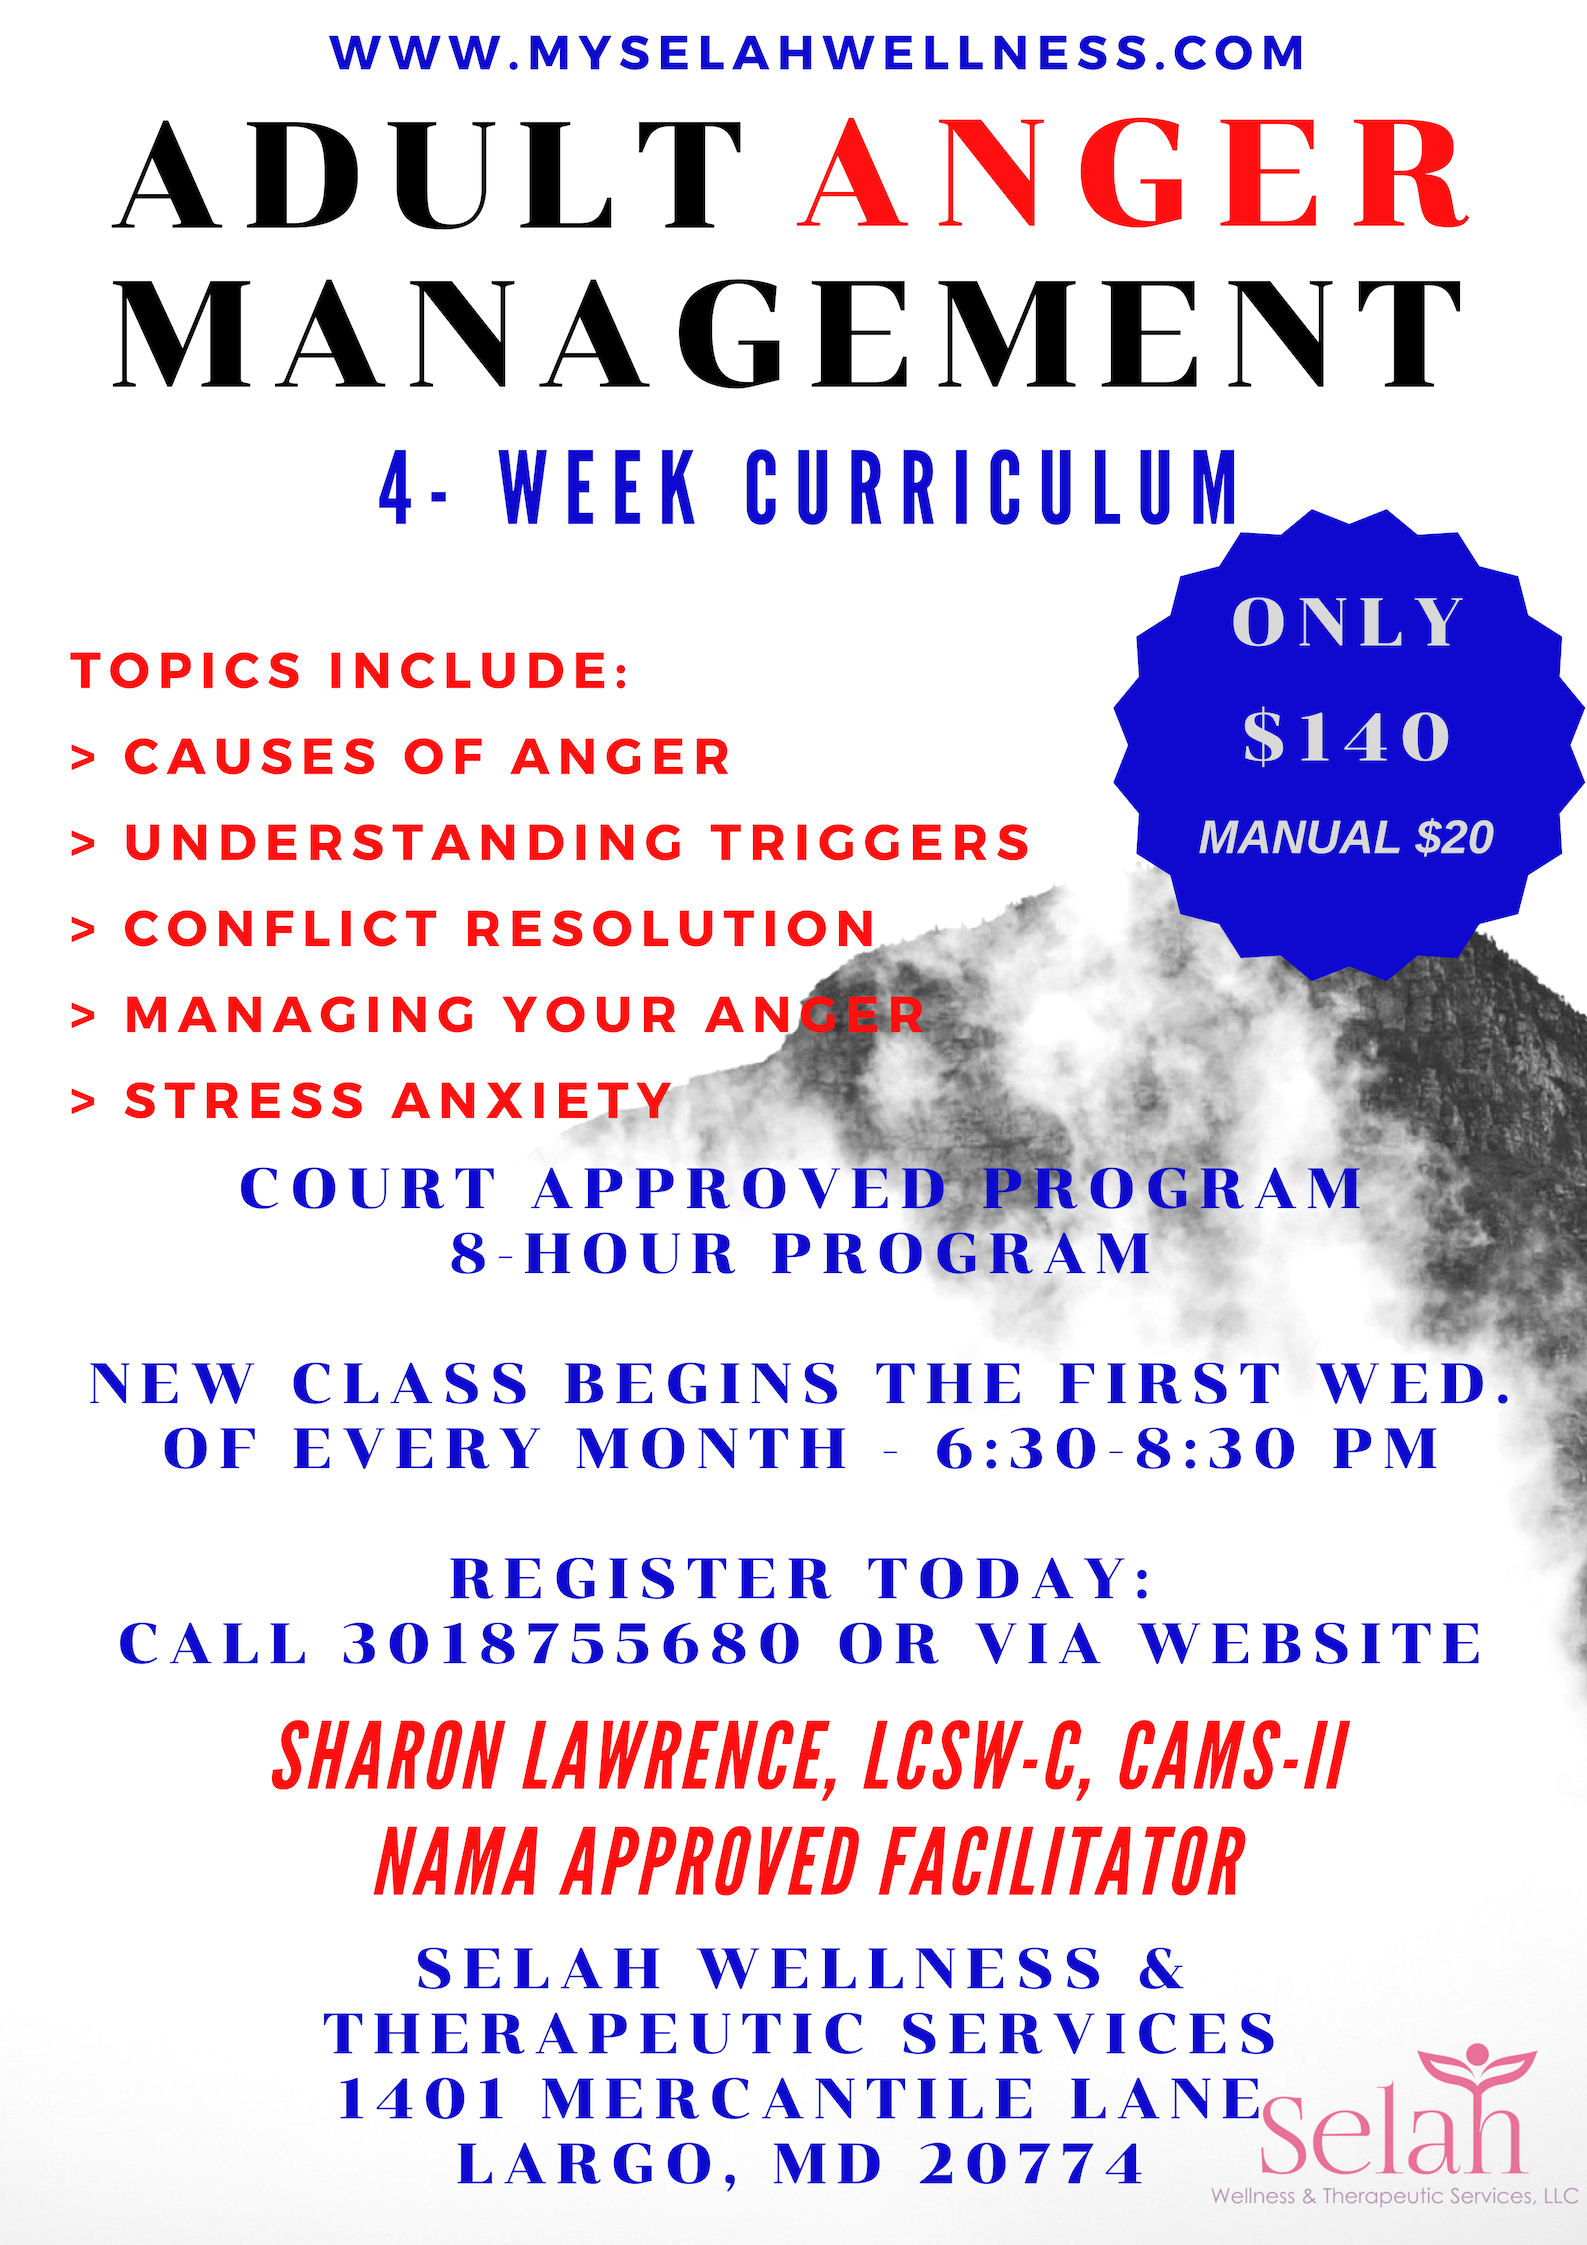 ADULTAnger Management Group - No Classes: July & August 2019Classes are Wednesdays or ThursdaysNext Session begins: September 4, 2019Please call (301) 875-5680 or email Admin@myselahwellness.com for more informationNo Children Allowed.Payments for Group and Manual is Non-Refundable.Register Here: www.myselahwellness.com/shop/anger